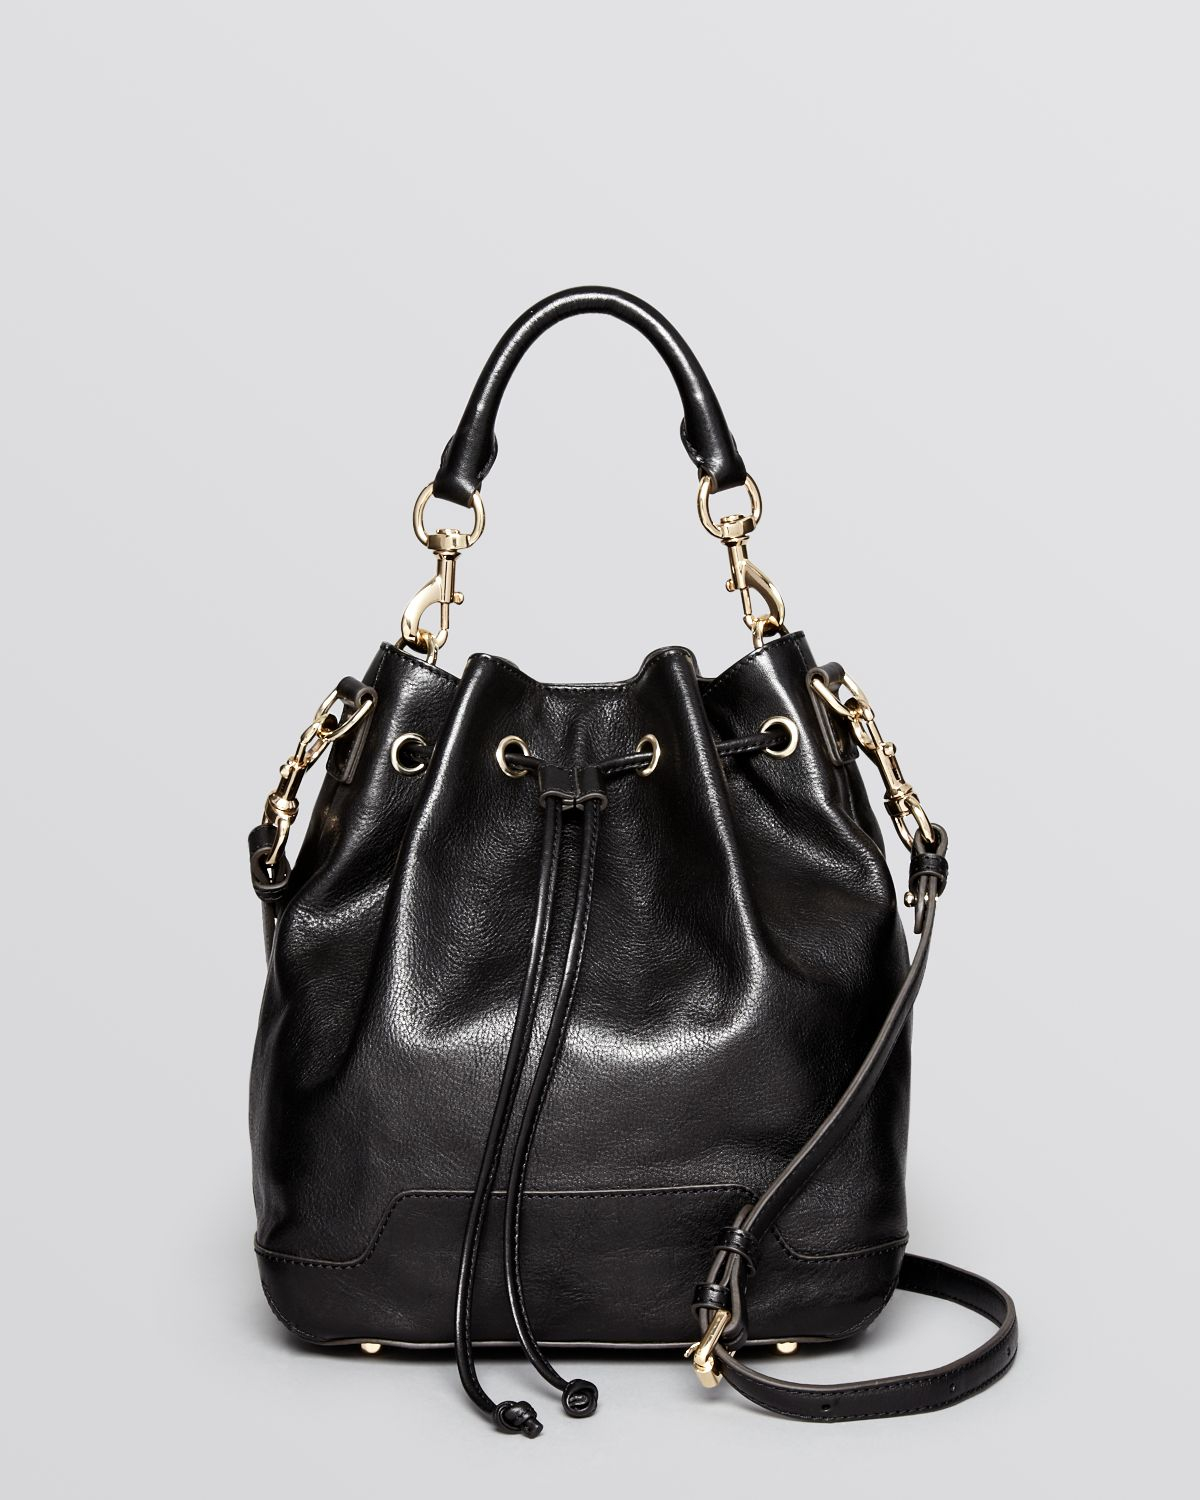 fake chloe bags uk - rebecca-minkoff-black-shoulder-bag-bloomingdales-exclusive-fiona-bucket-product-1-22723064-0-785359424-normal.jpeg